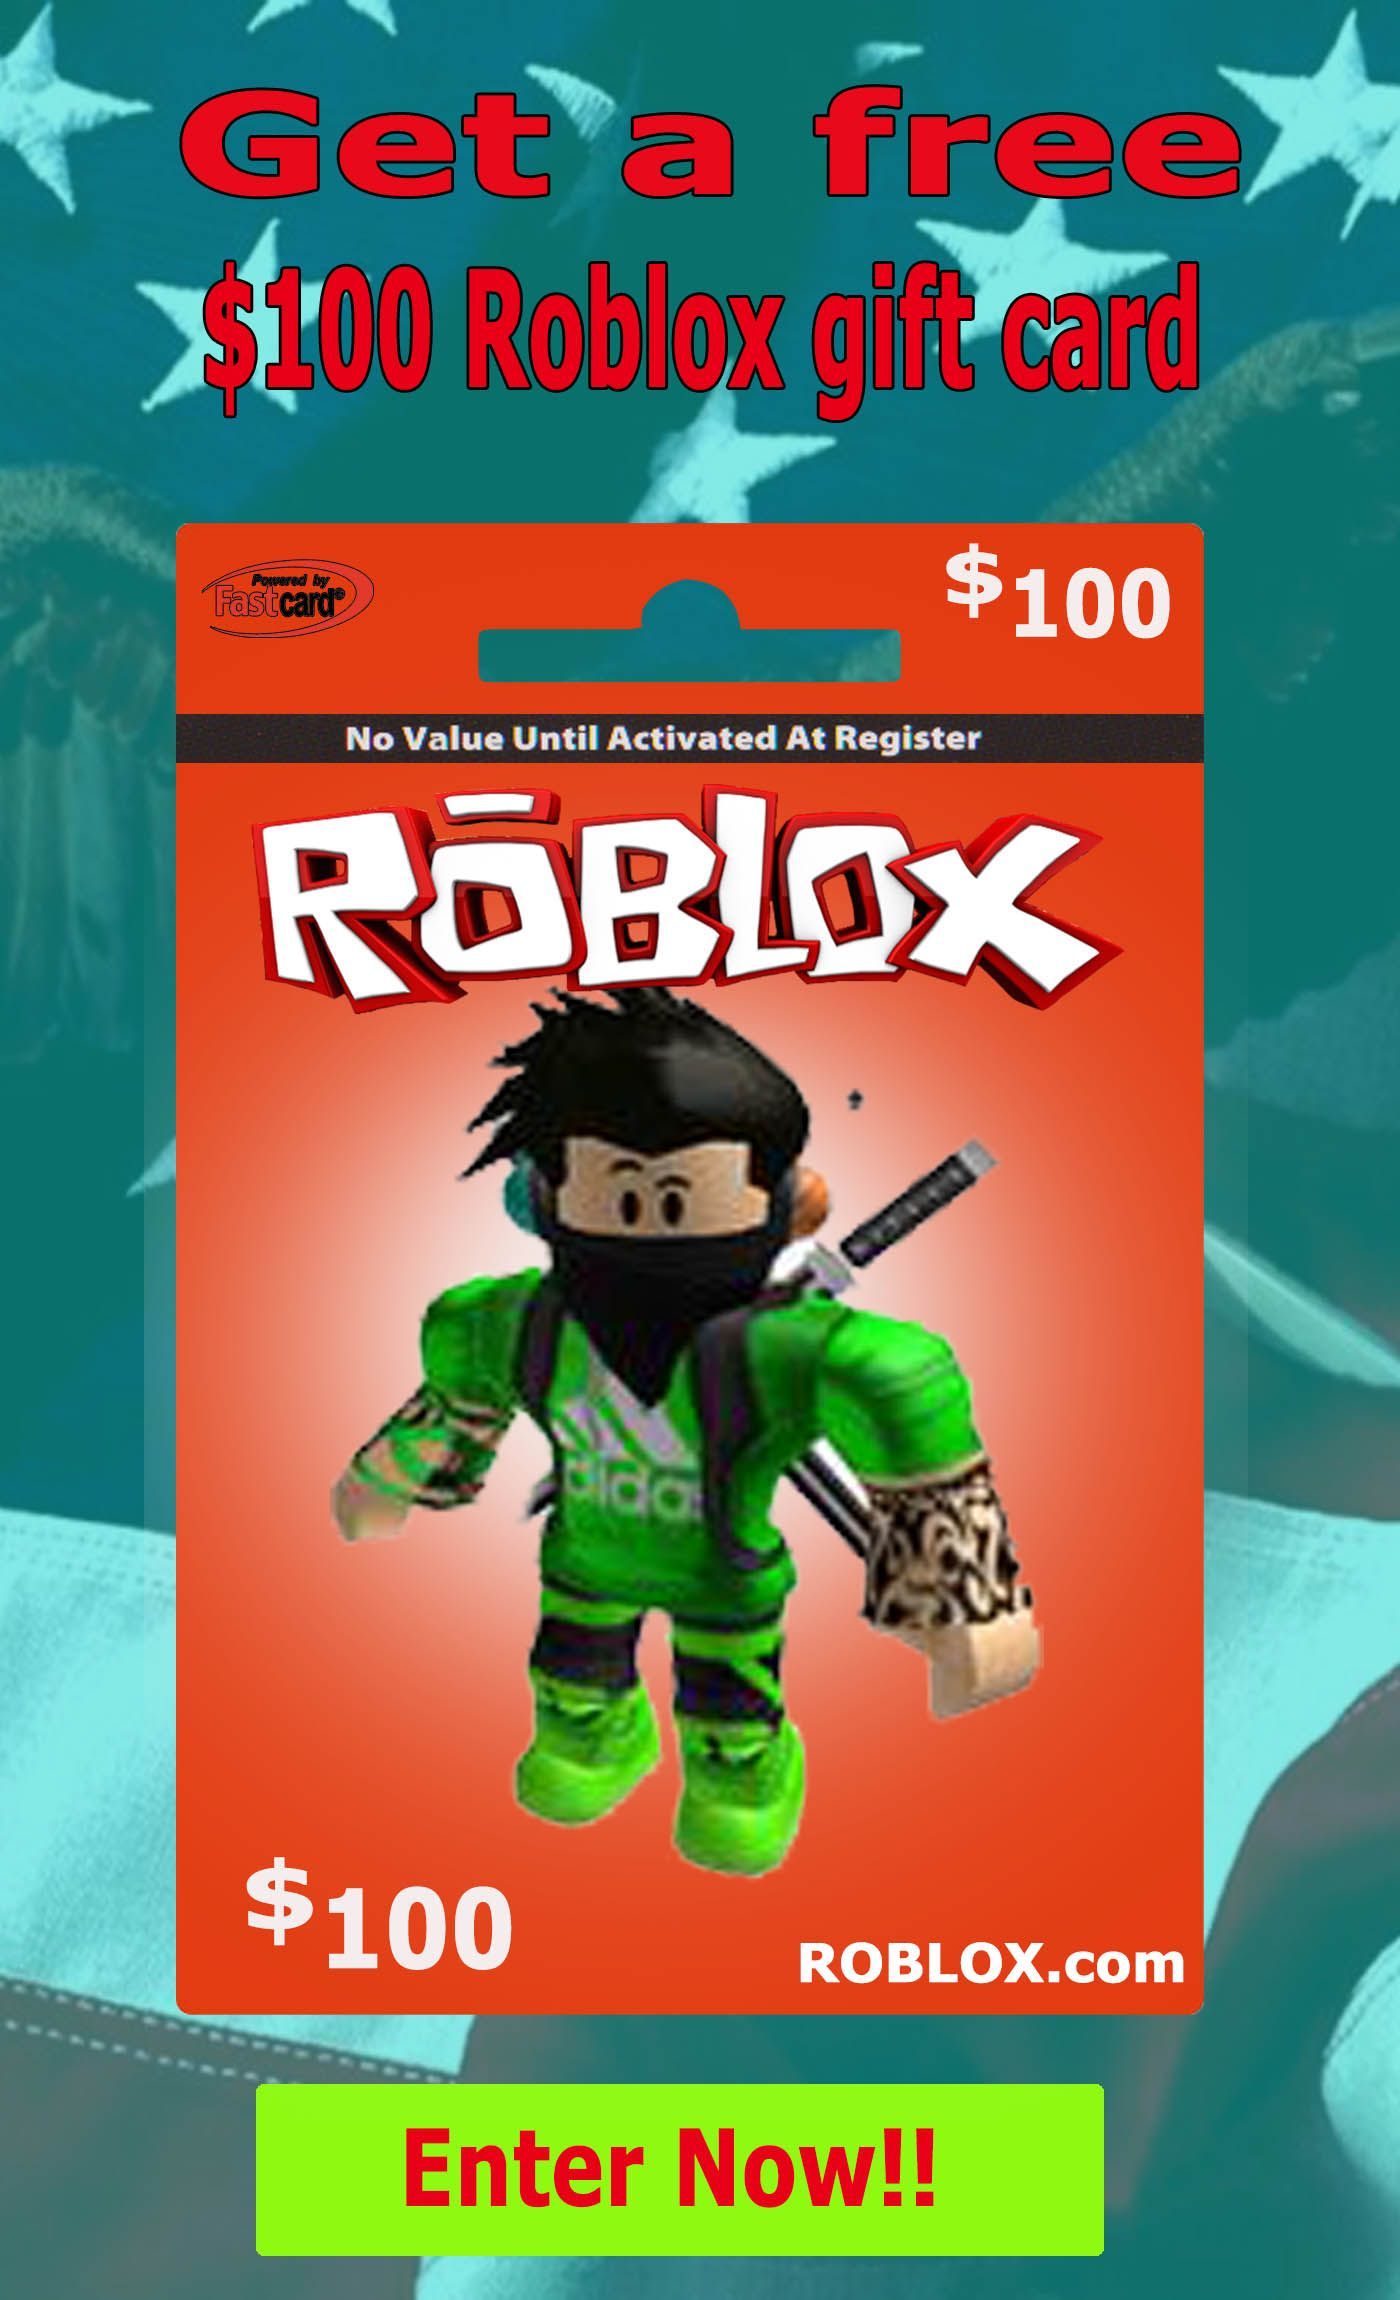 Get Free 100 Dollar Roblox Gift Card Code In 2020 Roblox Gifts Xbox Gift Card Free Itunes Gift Card